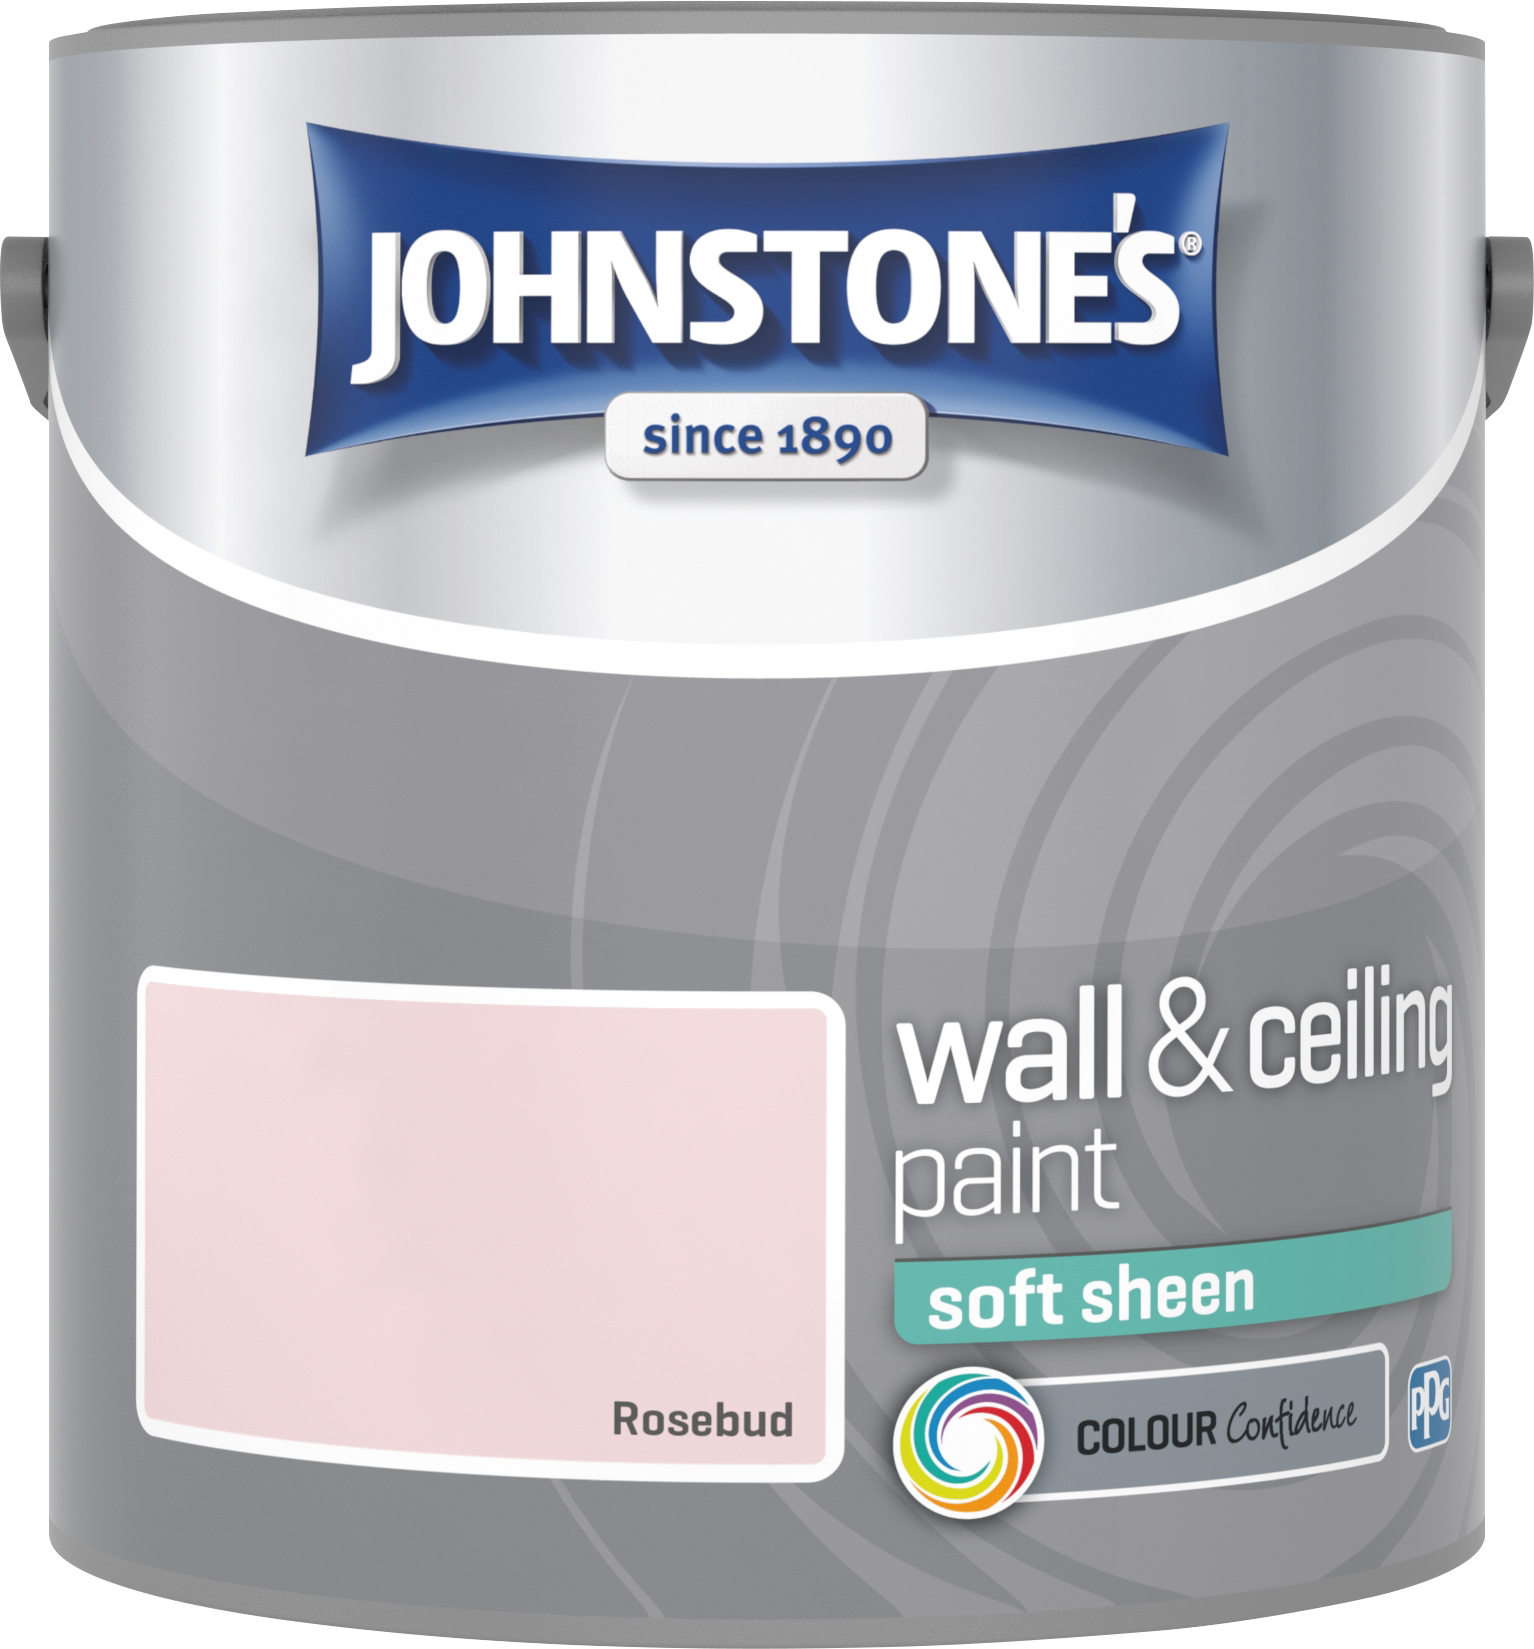 Johnstone's 2.5 Litre Soft Sheen Emulsion Paint - Rosebud